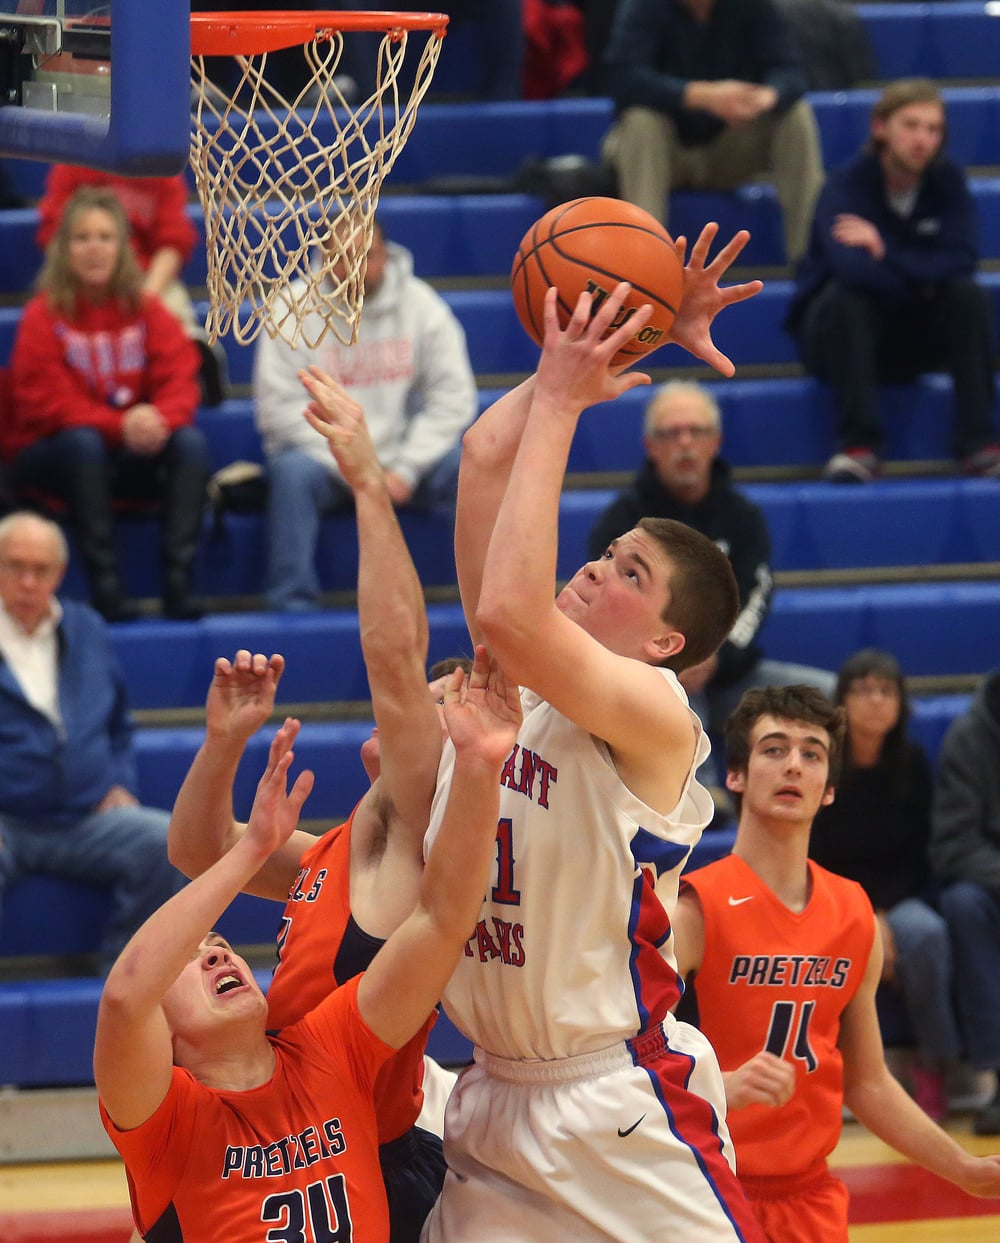 Pleasant Plains player Kaleb Wolters grabs a rebound. David Spencer/The State Journal Register